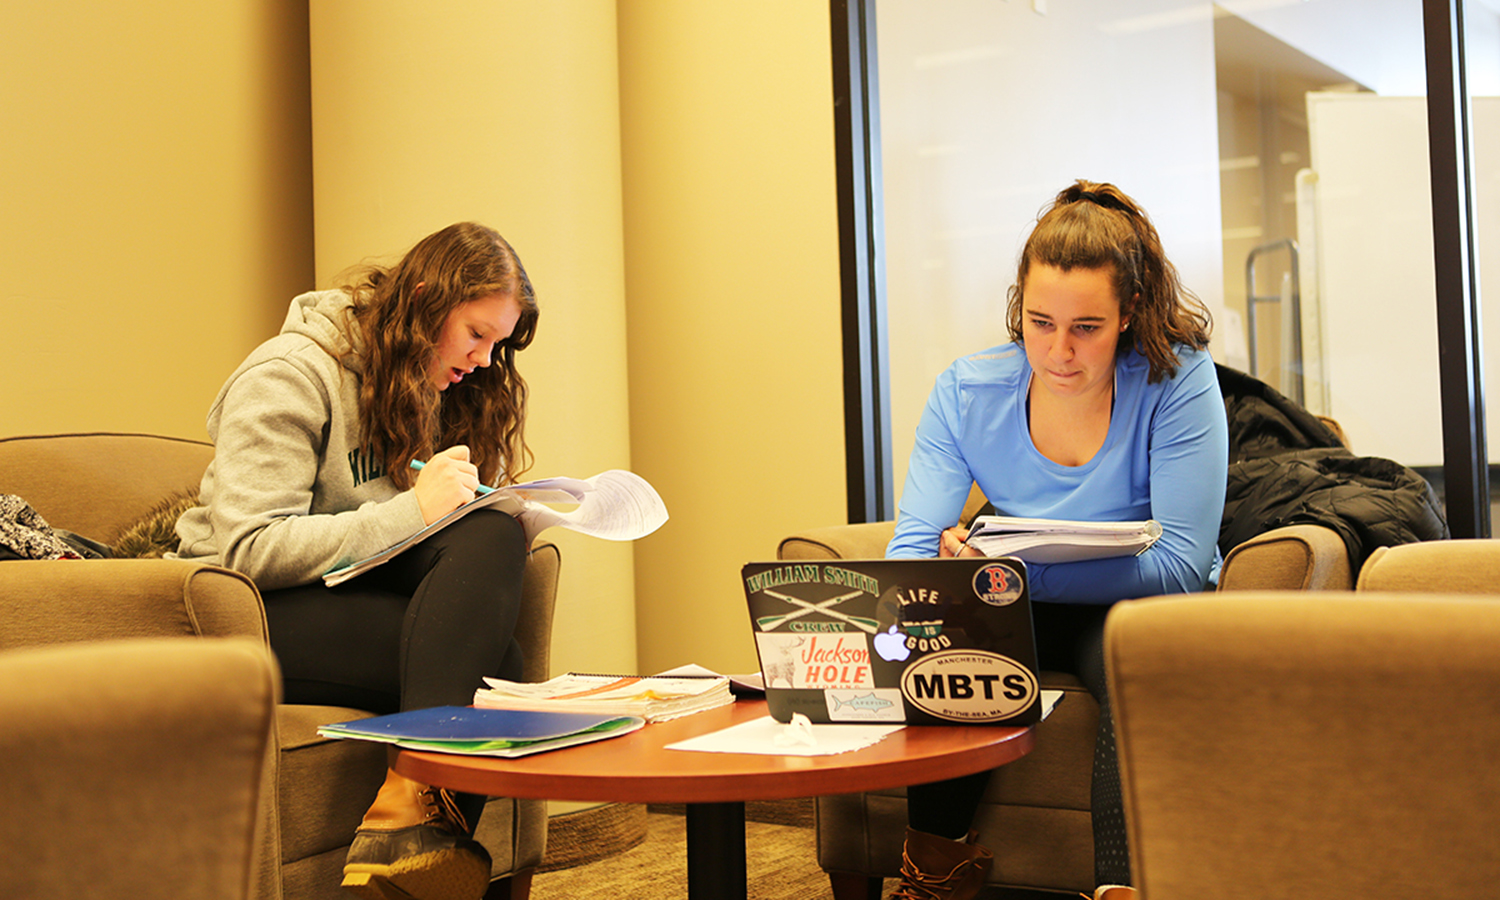 Carey Seviel '18 and Elizabeth Warren '18 working in the library